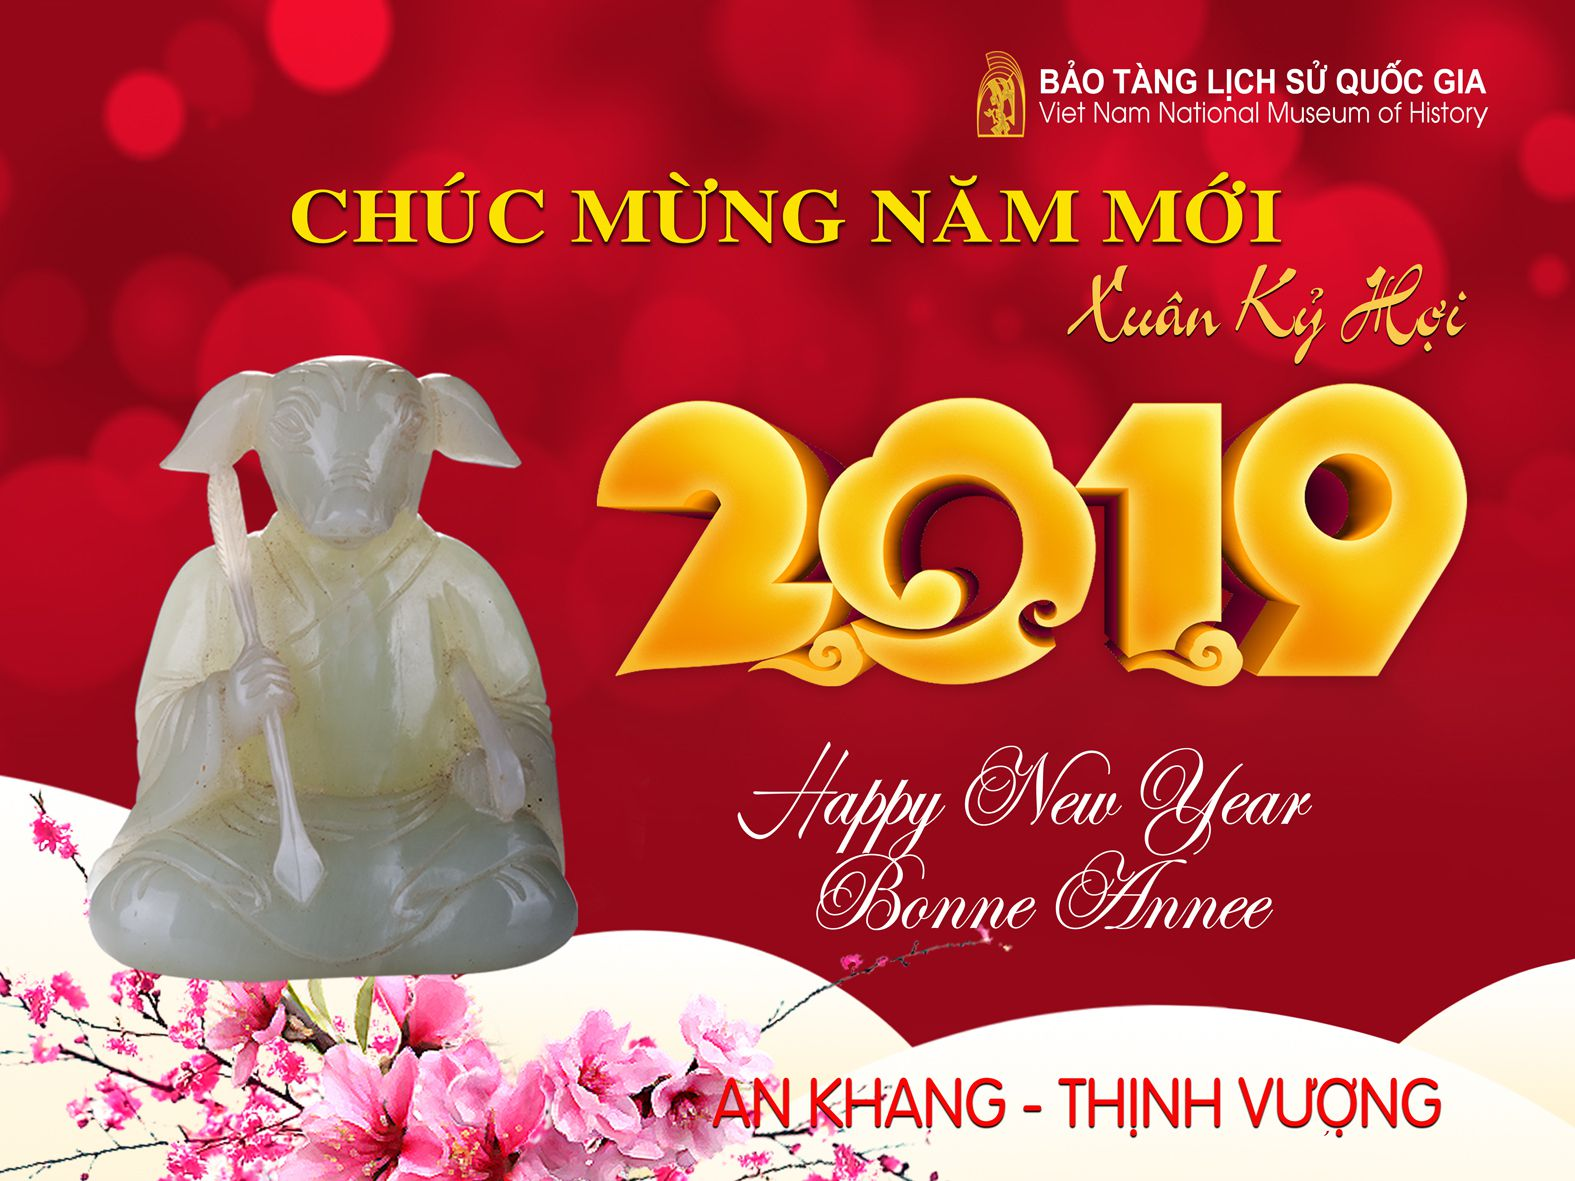 DIRECTOR OF THE VIETNAM NATIONAL MUSEUM OF HISTORY HAPPY NEW YEAR- KỶ HỢI SPRING 2019